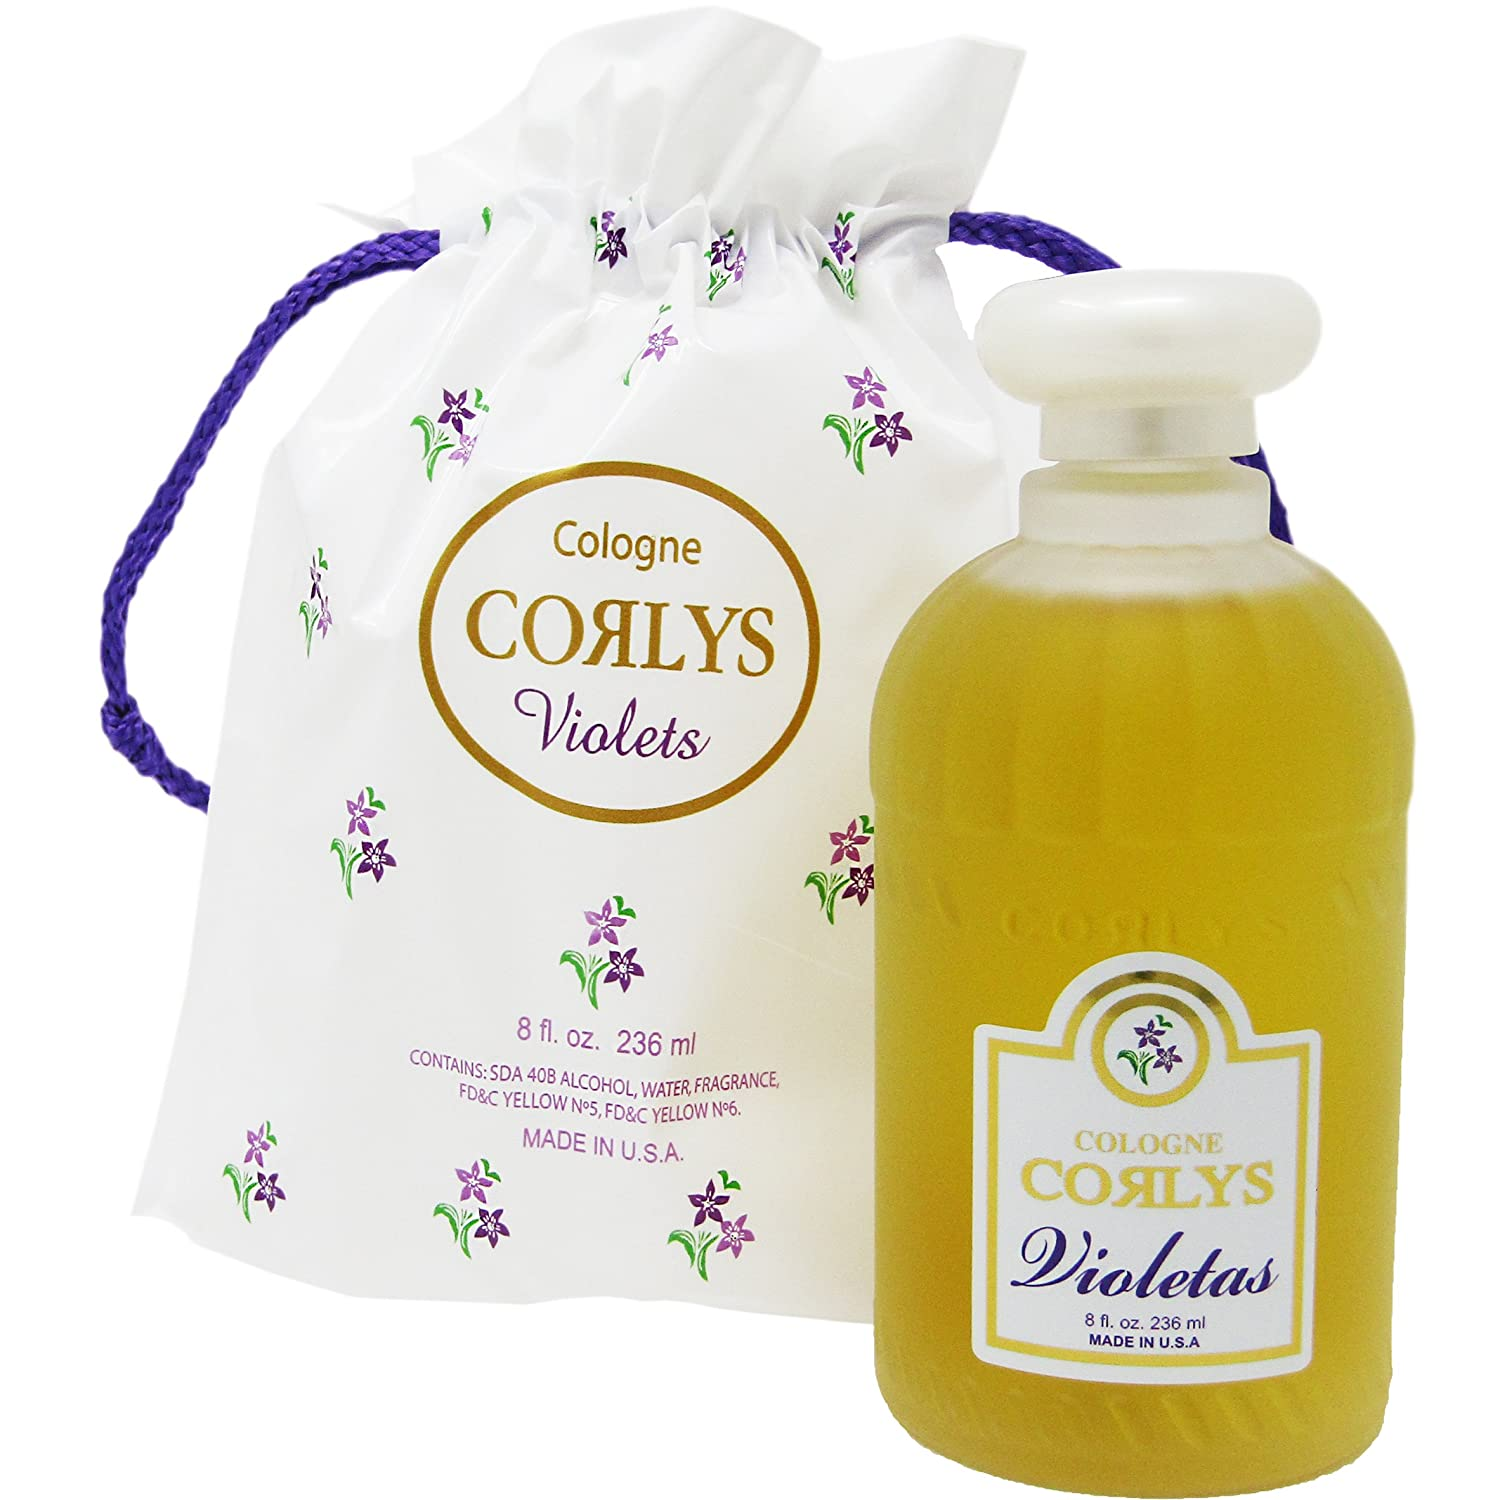 Amazon.com : Corlys Violets Cologne 8oz. A Cuban Delight : Baby Care Products : Beauty